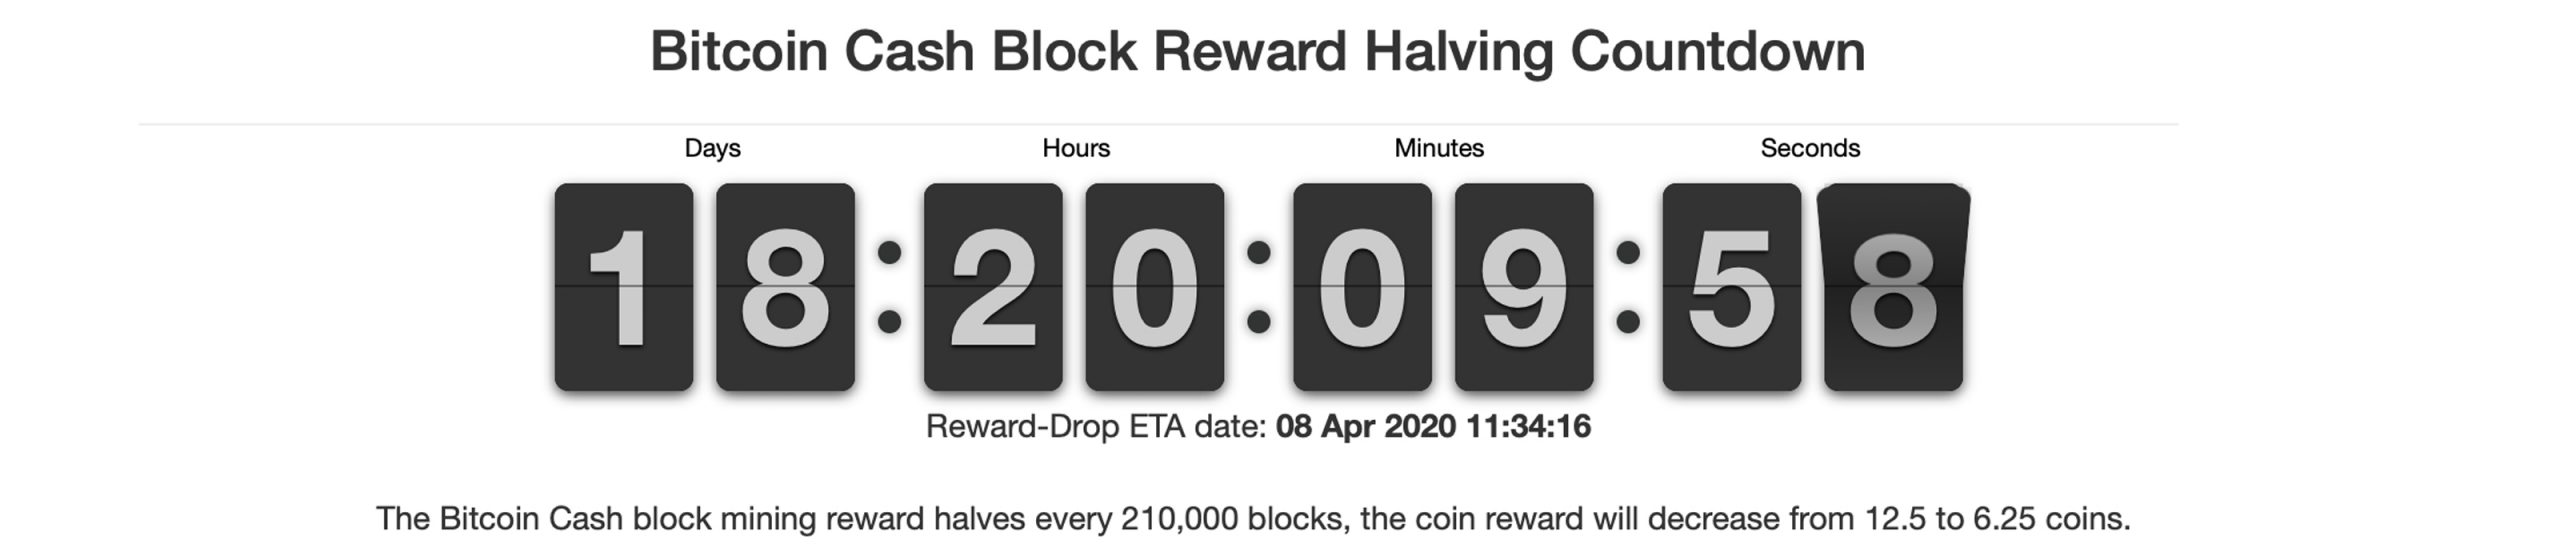 Countdown to Block Reward Reduction – 18 Days Until Bitcoin Cash Halving